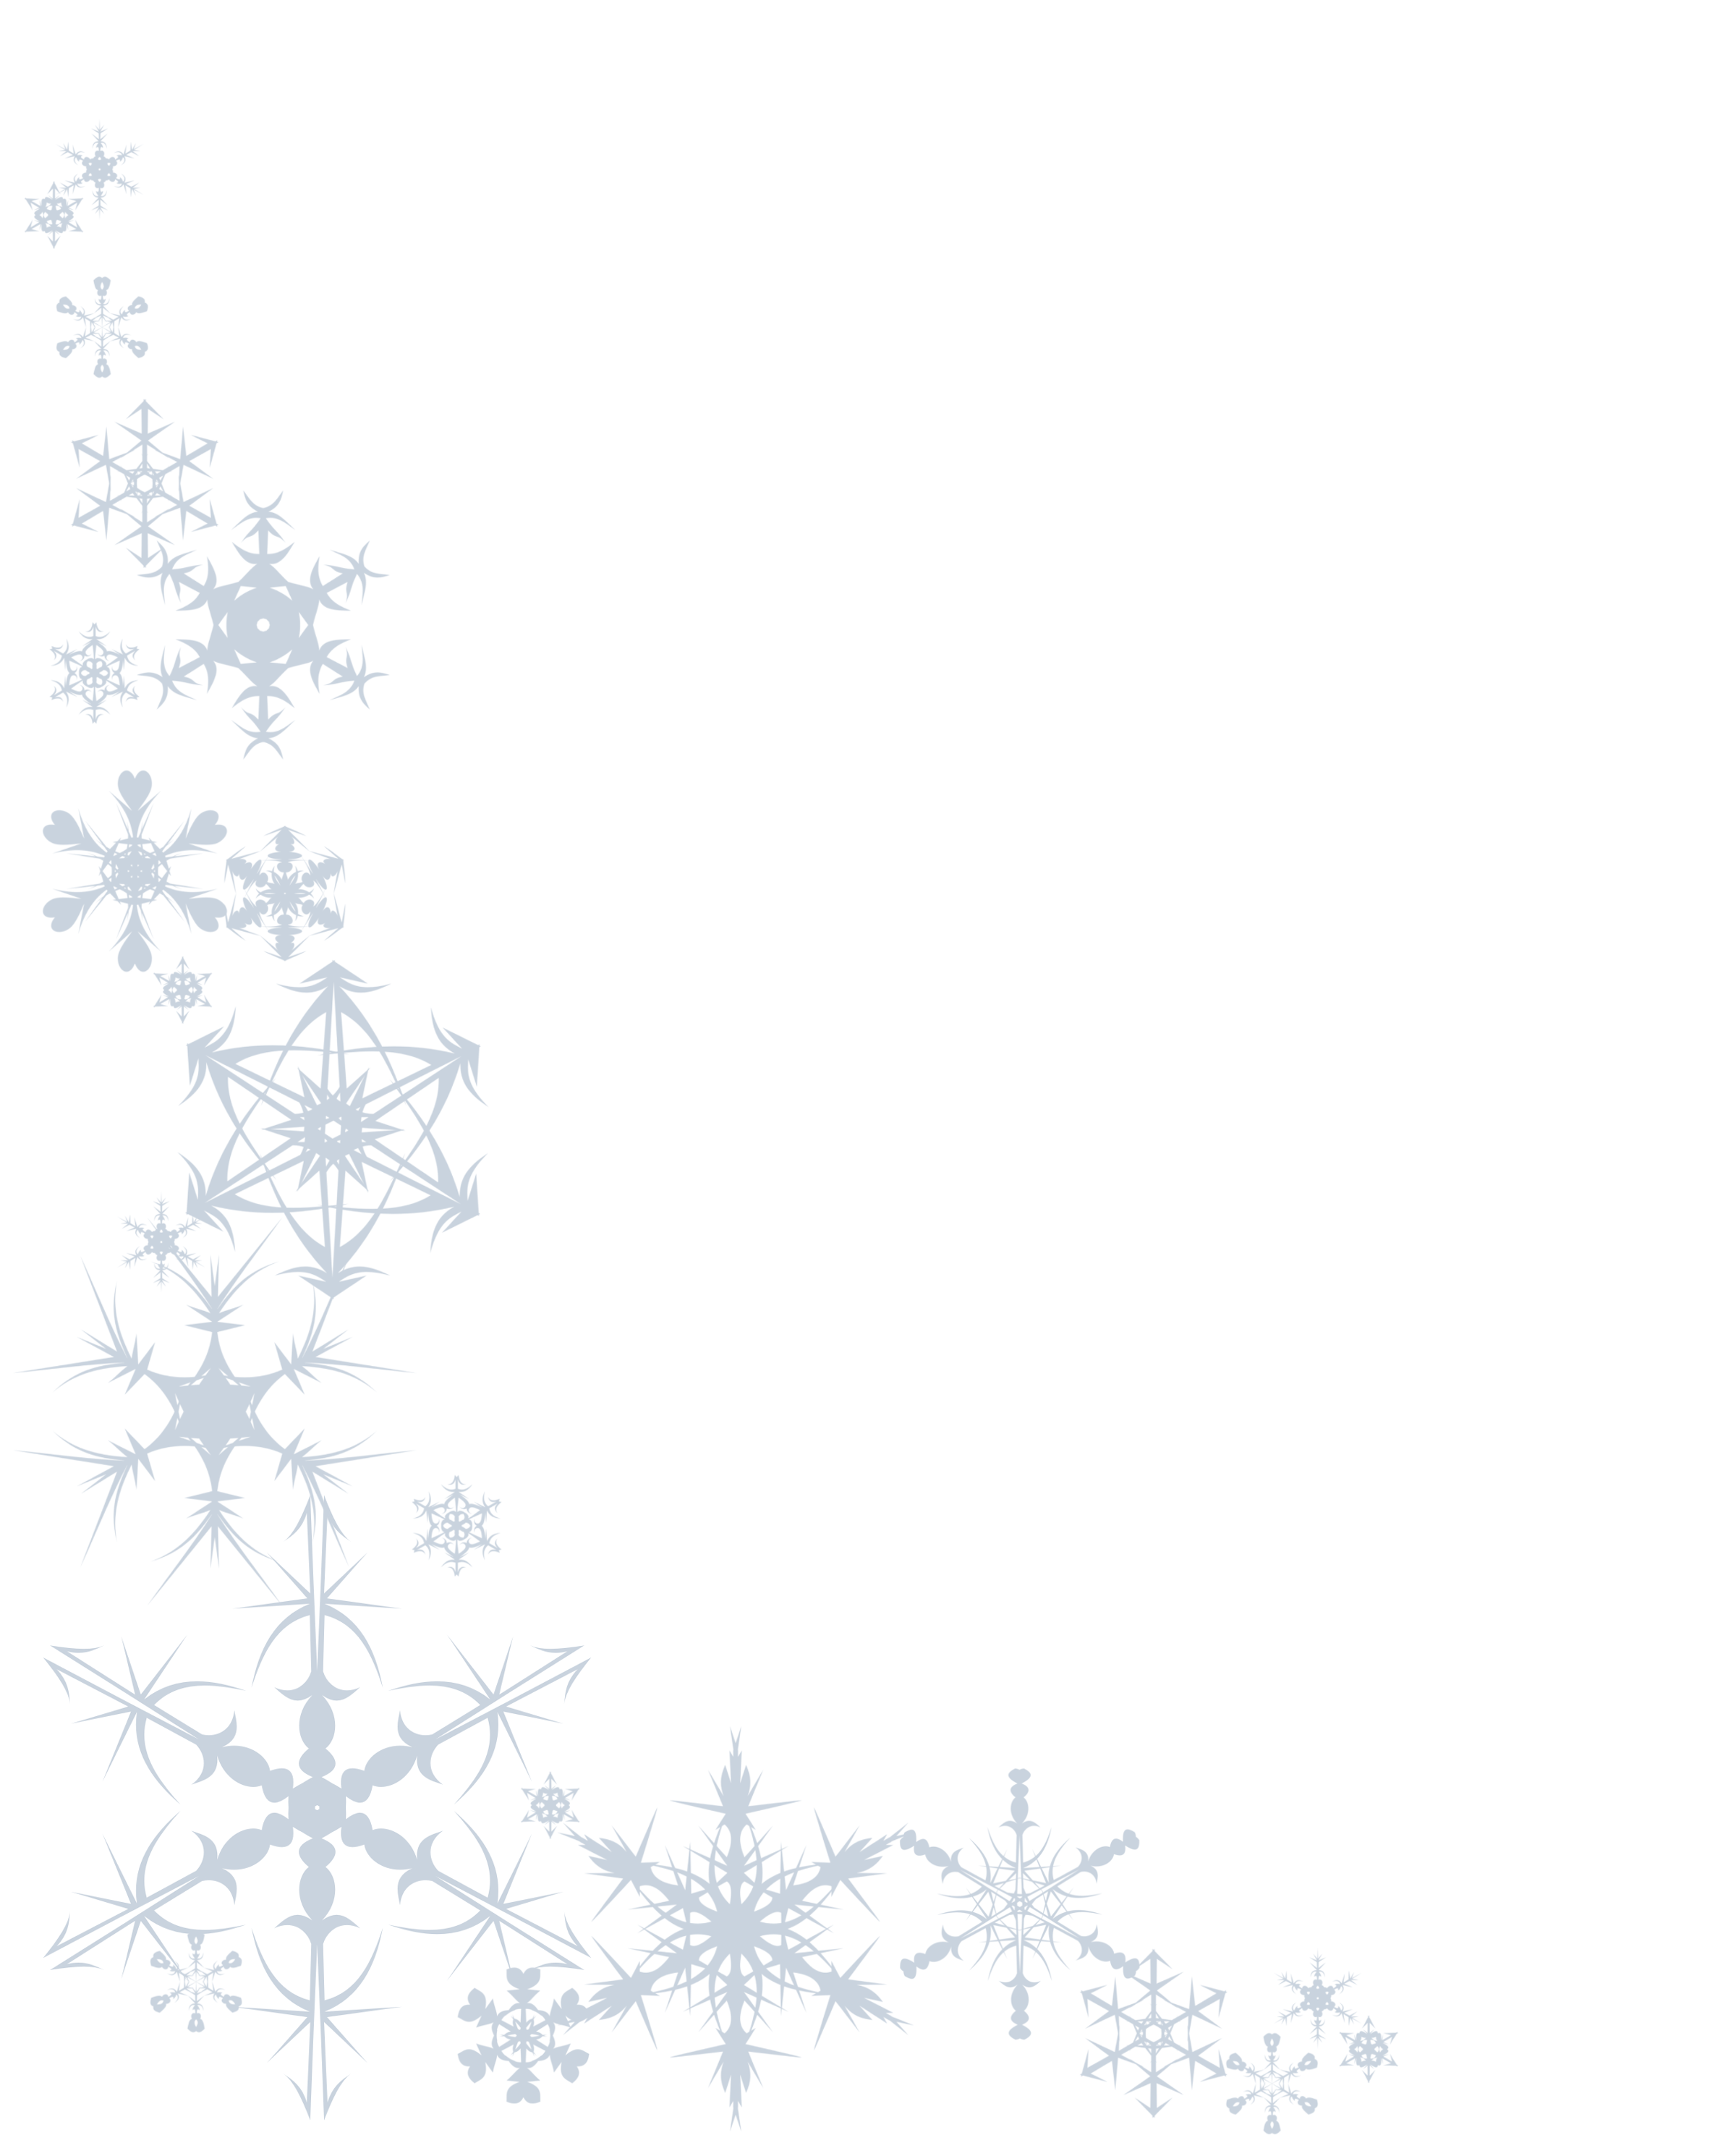 banner royalty free library Snowflake borders clipart. Free transparent border download.